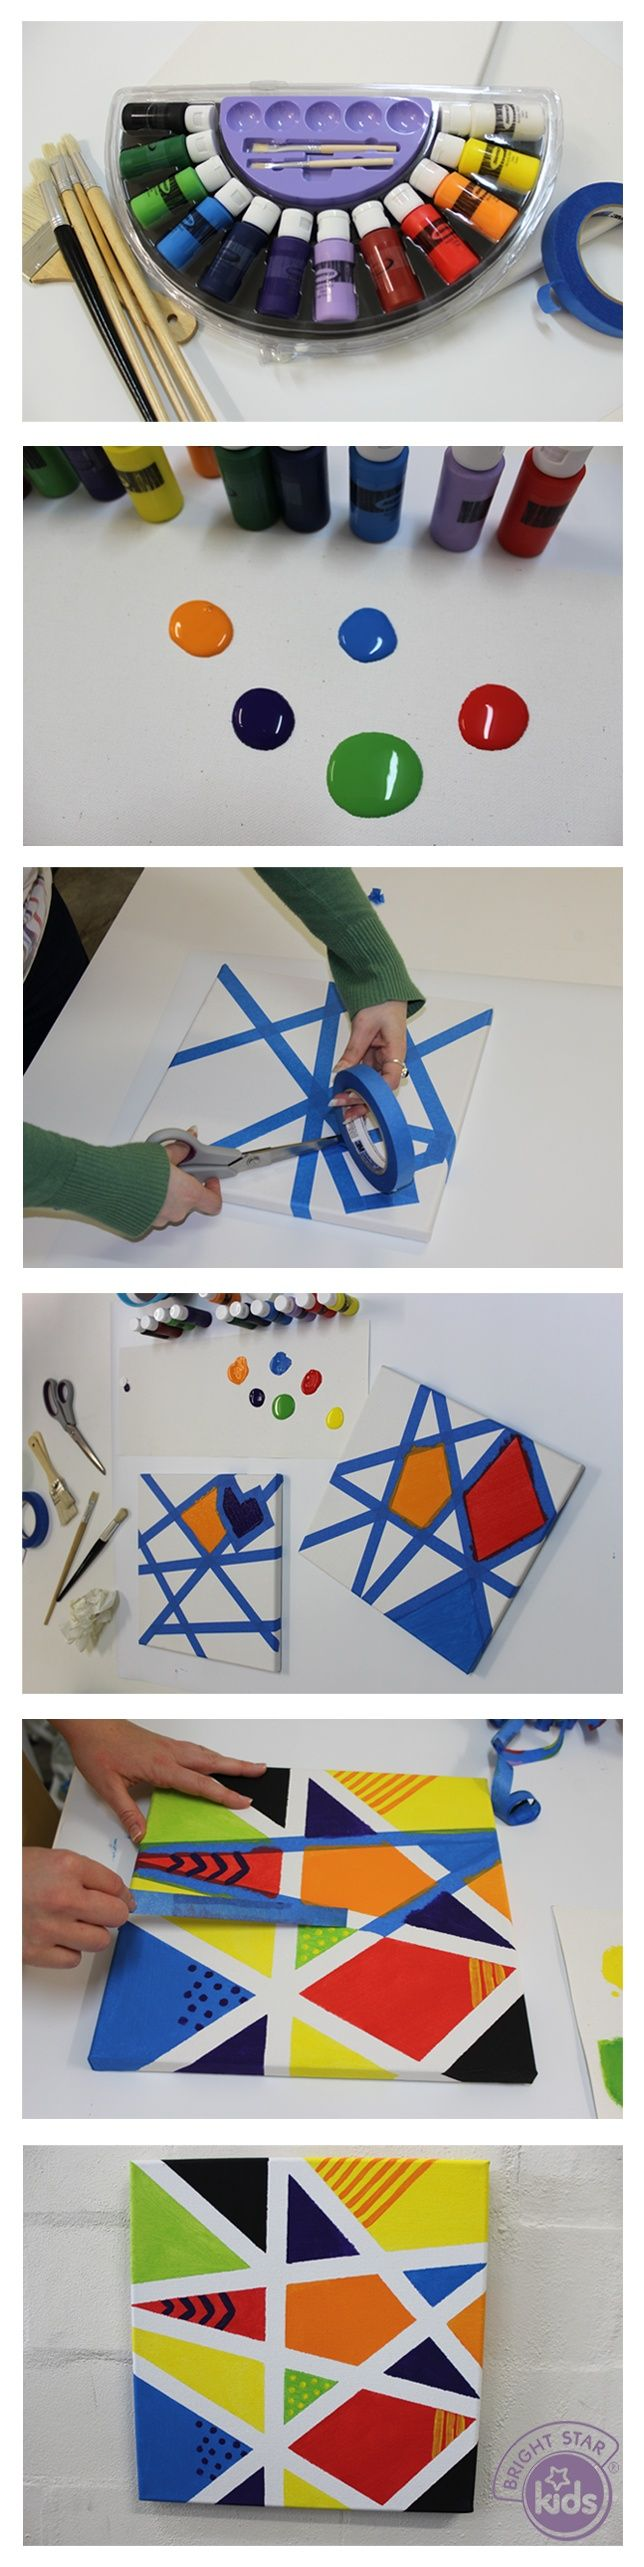 Tape resist painting- a fun project for kids